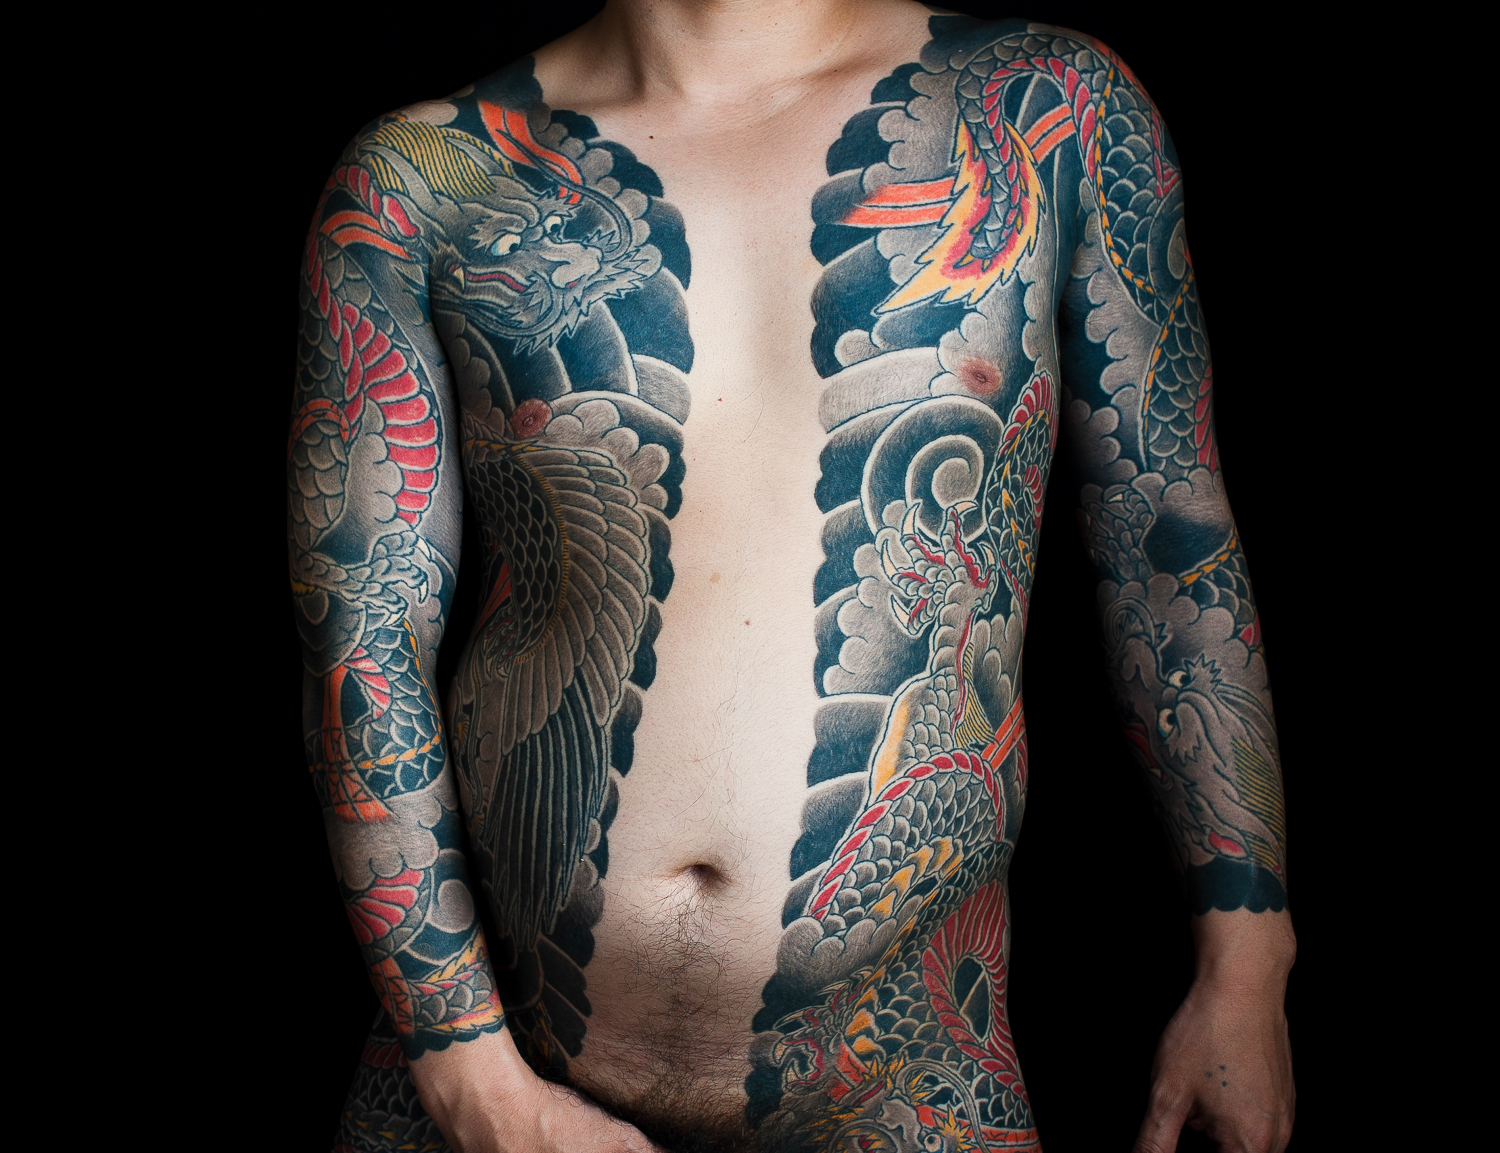 japanese tattoos irezumi meaning and history with pictures - HD1500×1153